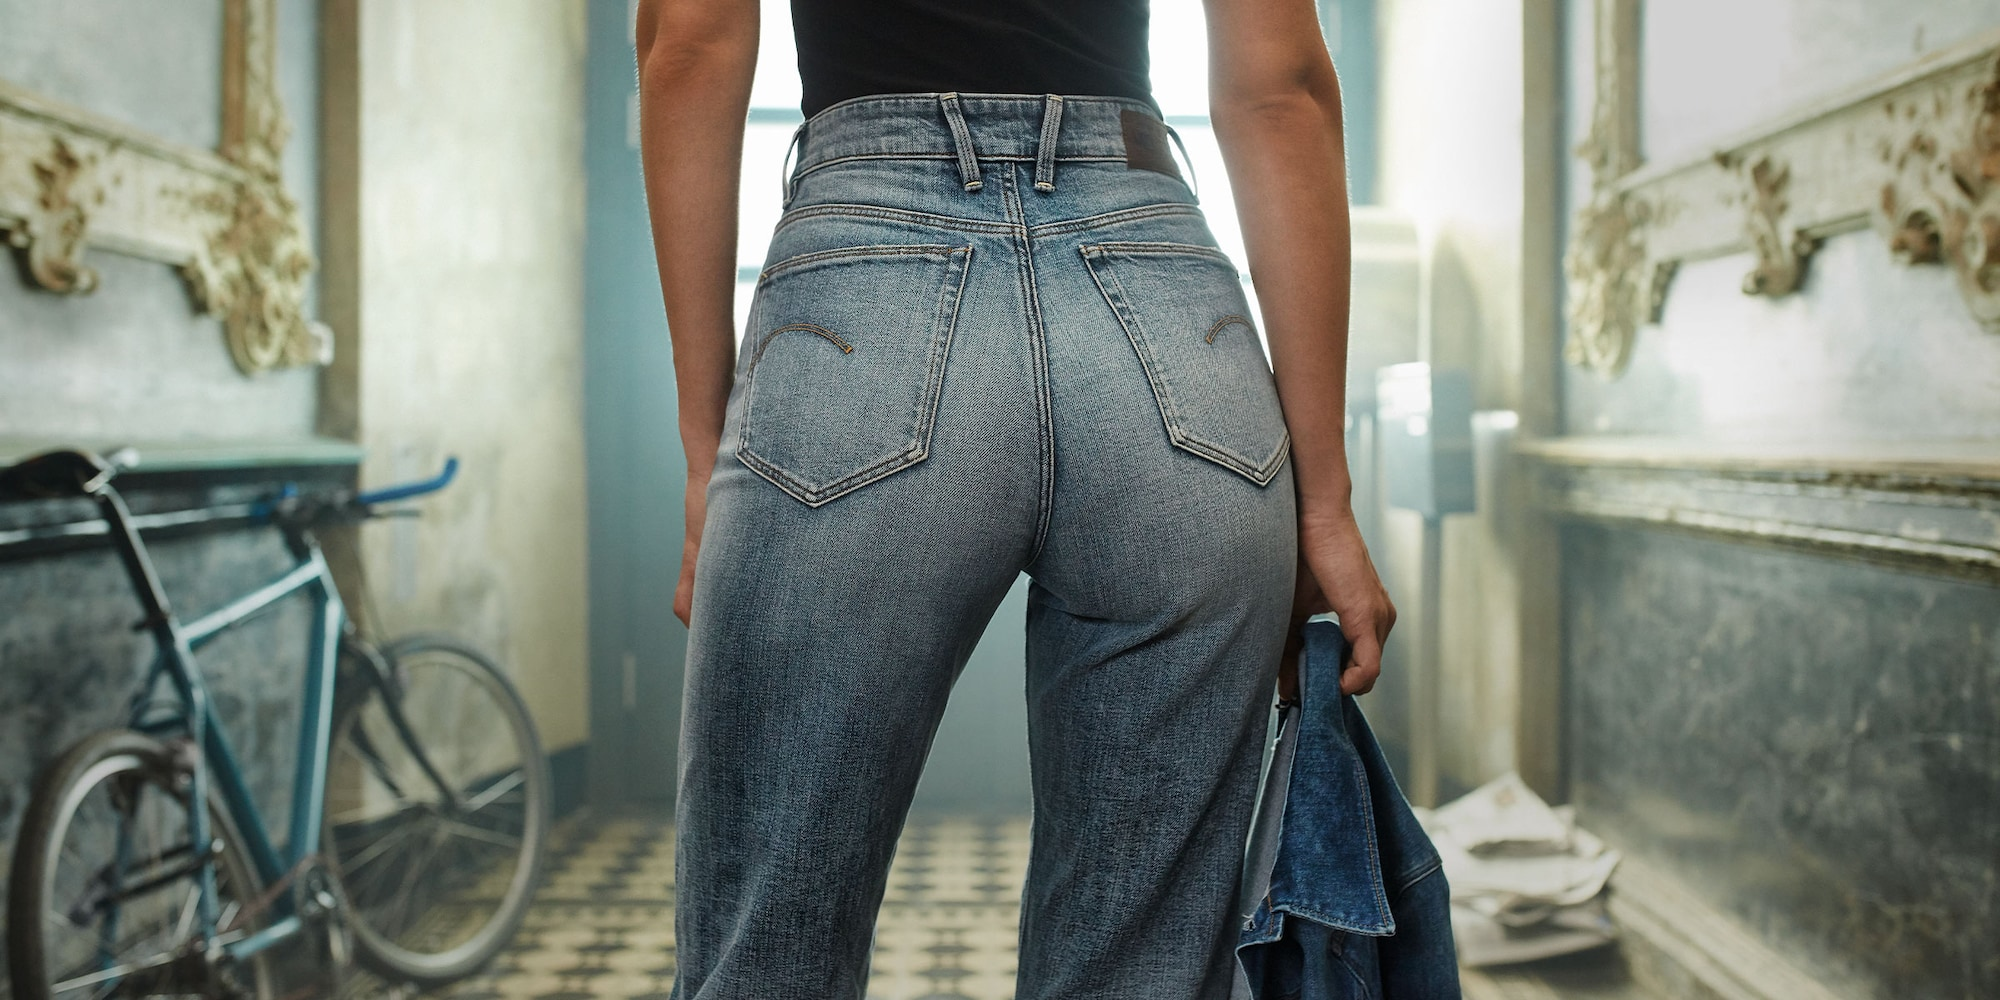 Bootyful by G-Star RAW